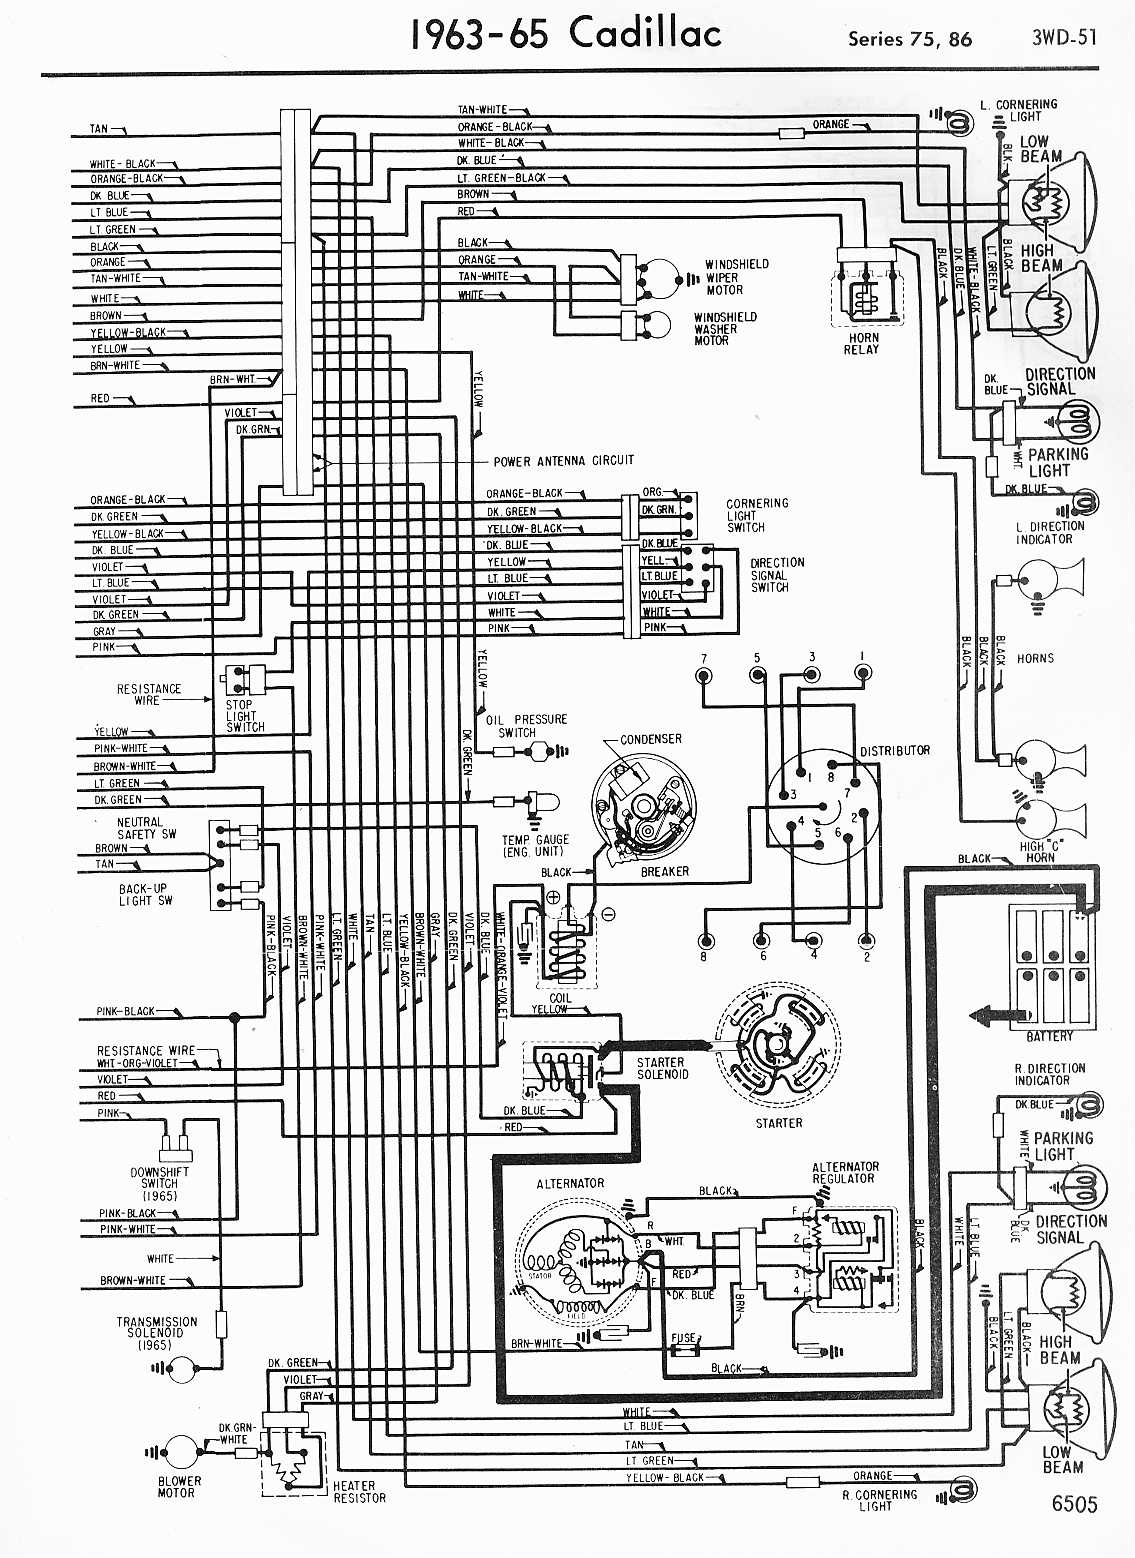 cadillac wiring diagrams: 1957-1965 1966 cadillac wiring diagram 1966 catalina wiring diagram